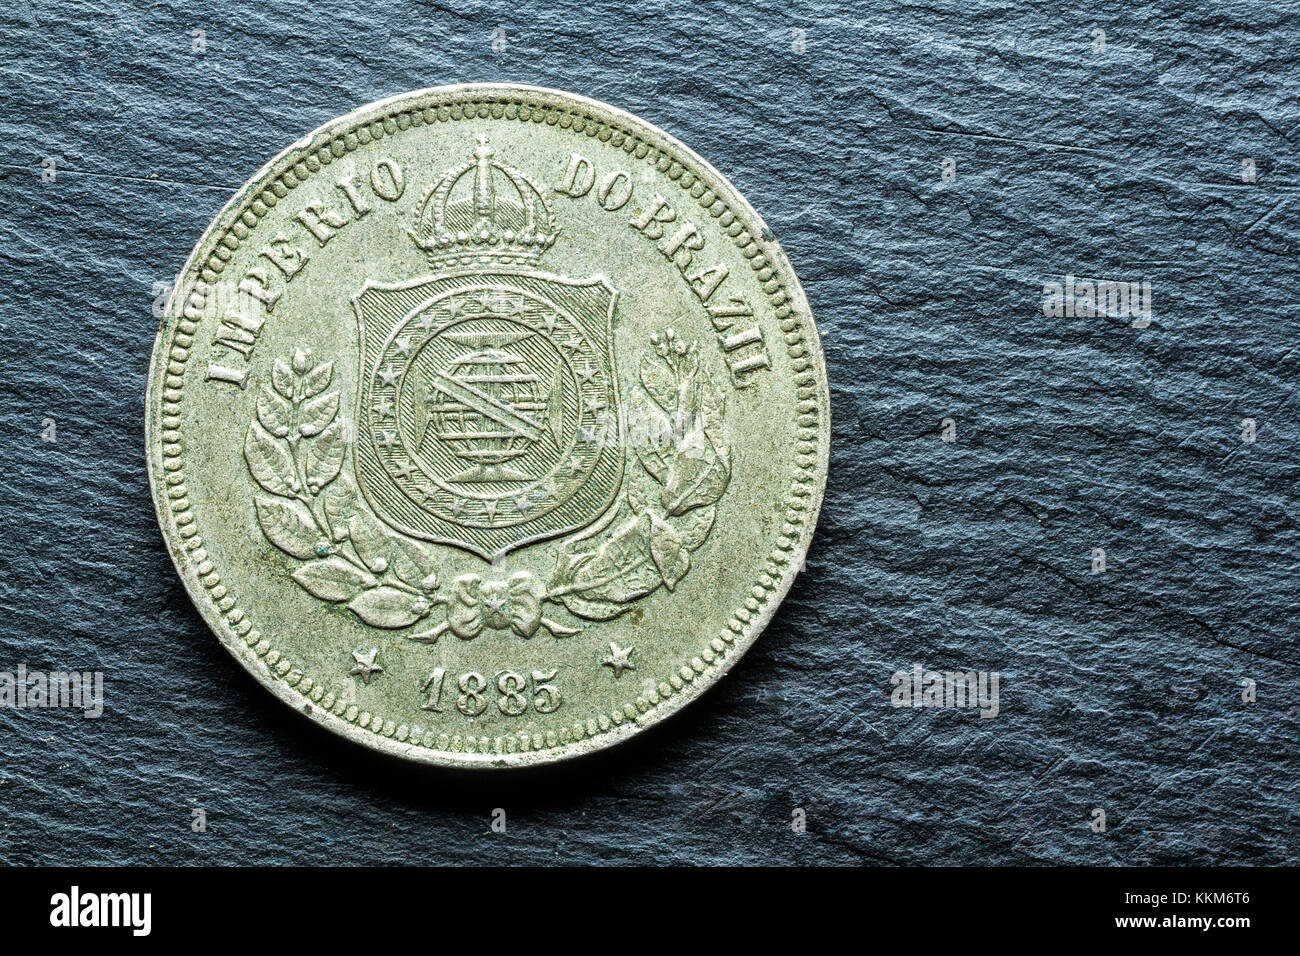 Antique coin of 100 Reis, from the former Brazilian Empire, dated from 1885. Florianopolis, Santa Catarina, Brazil. - Stock Image